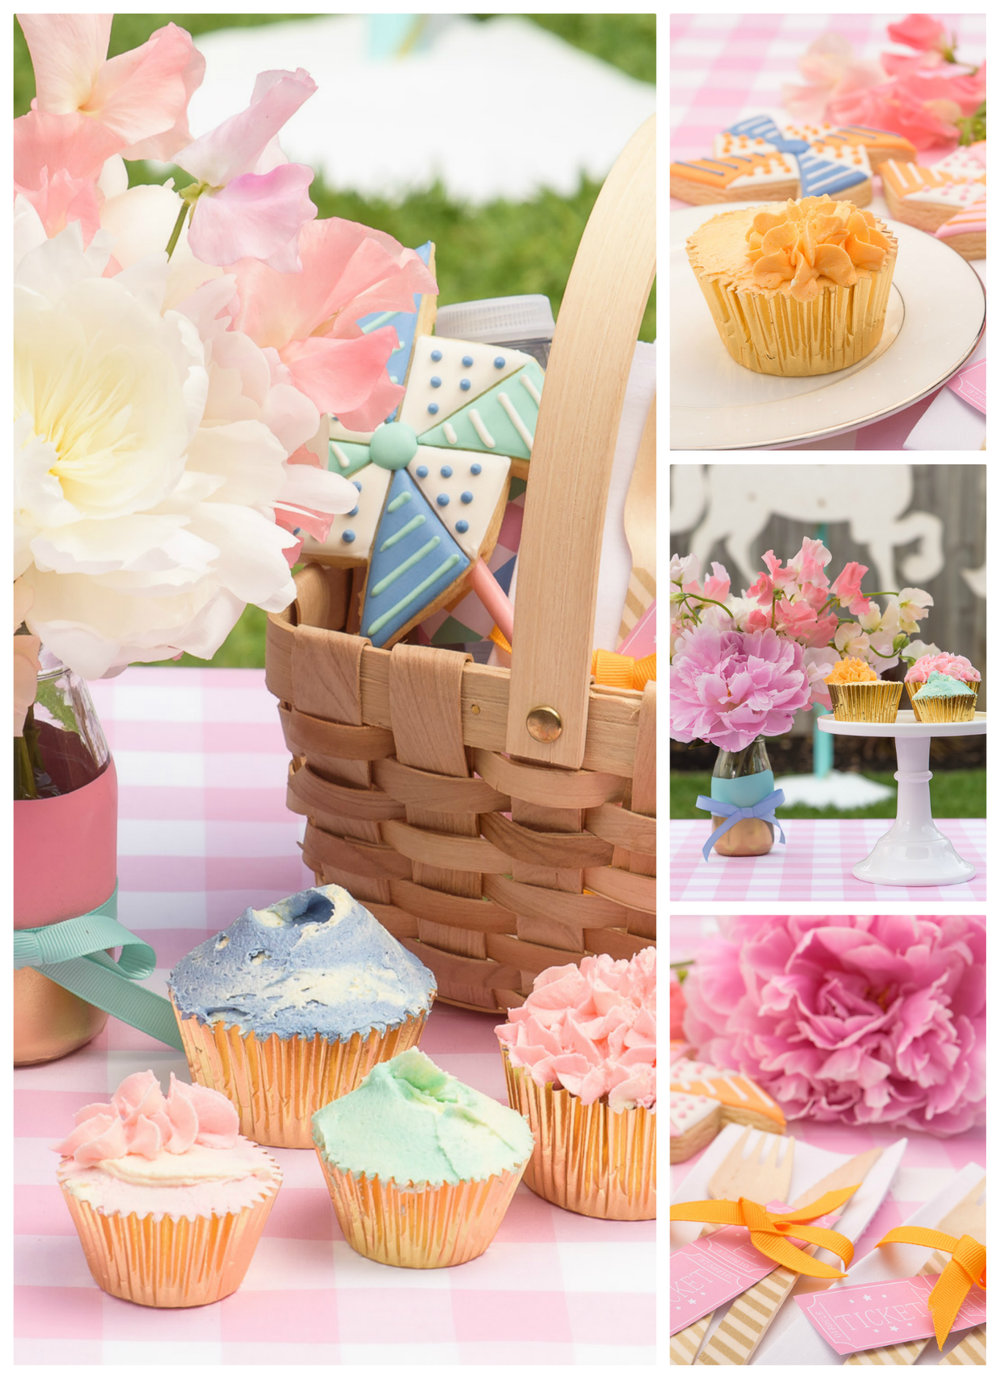 Something Wonderful Happened Party Ideas